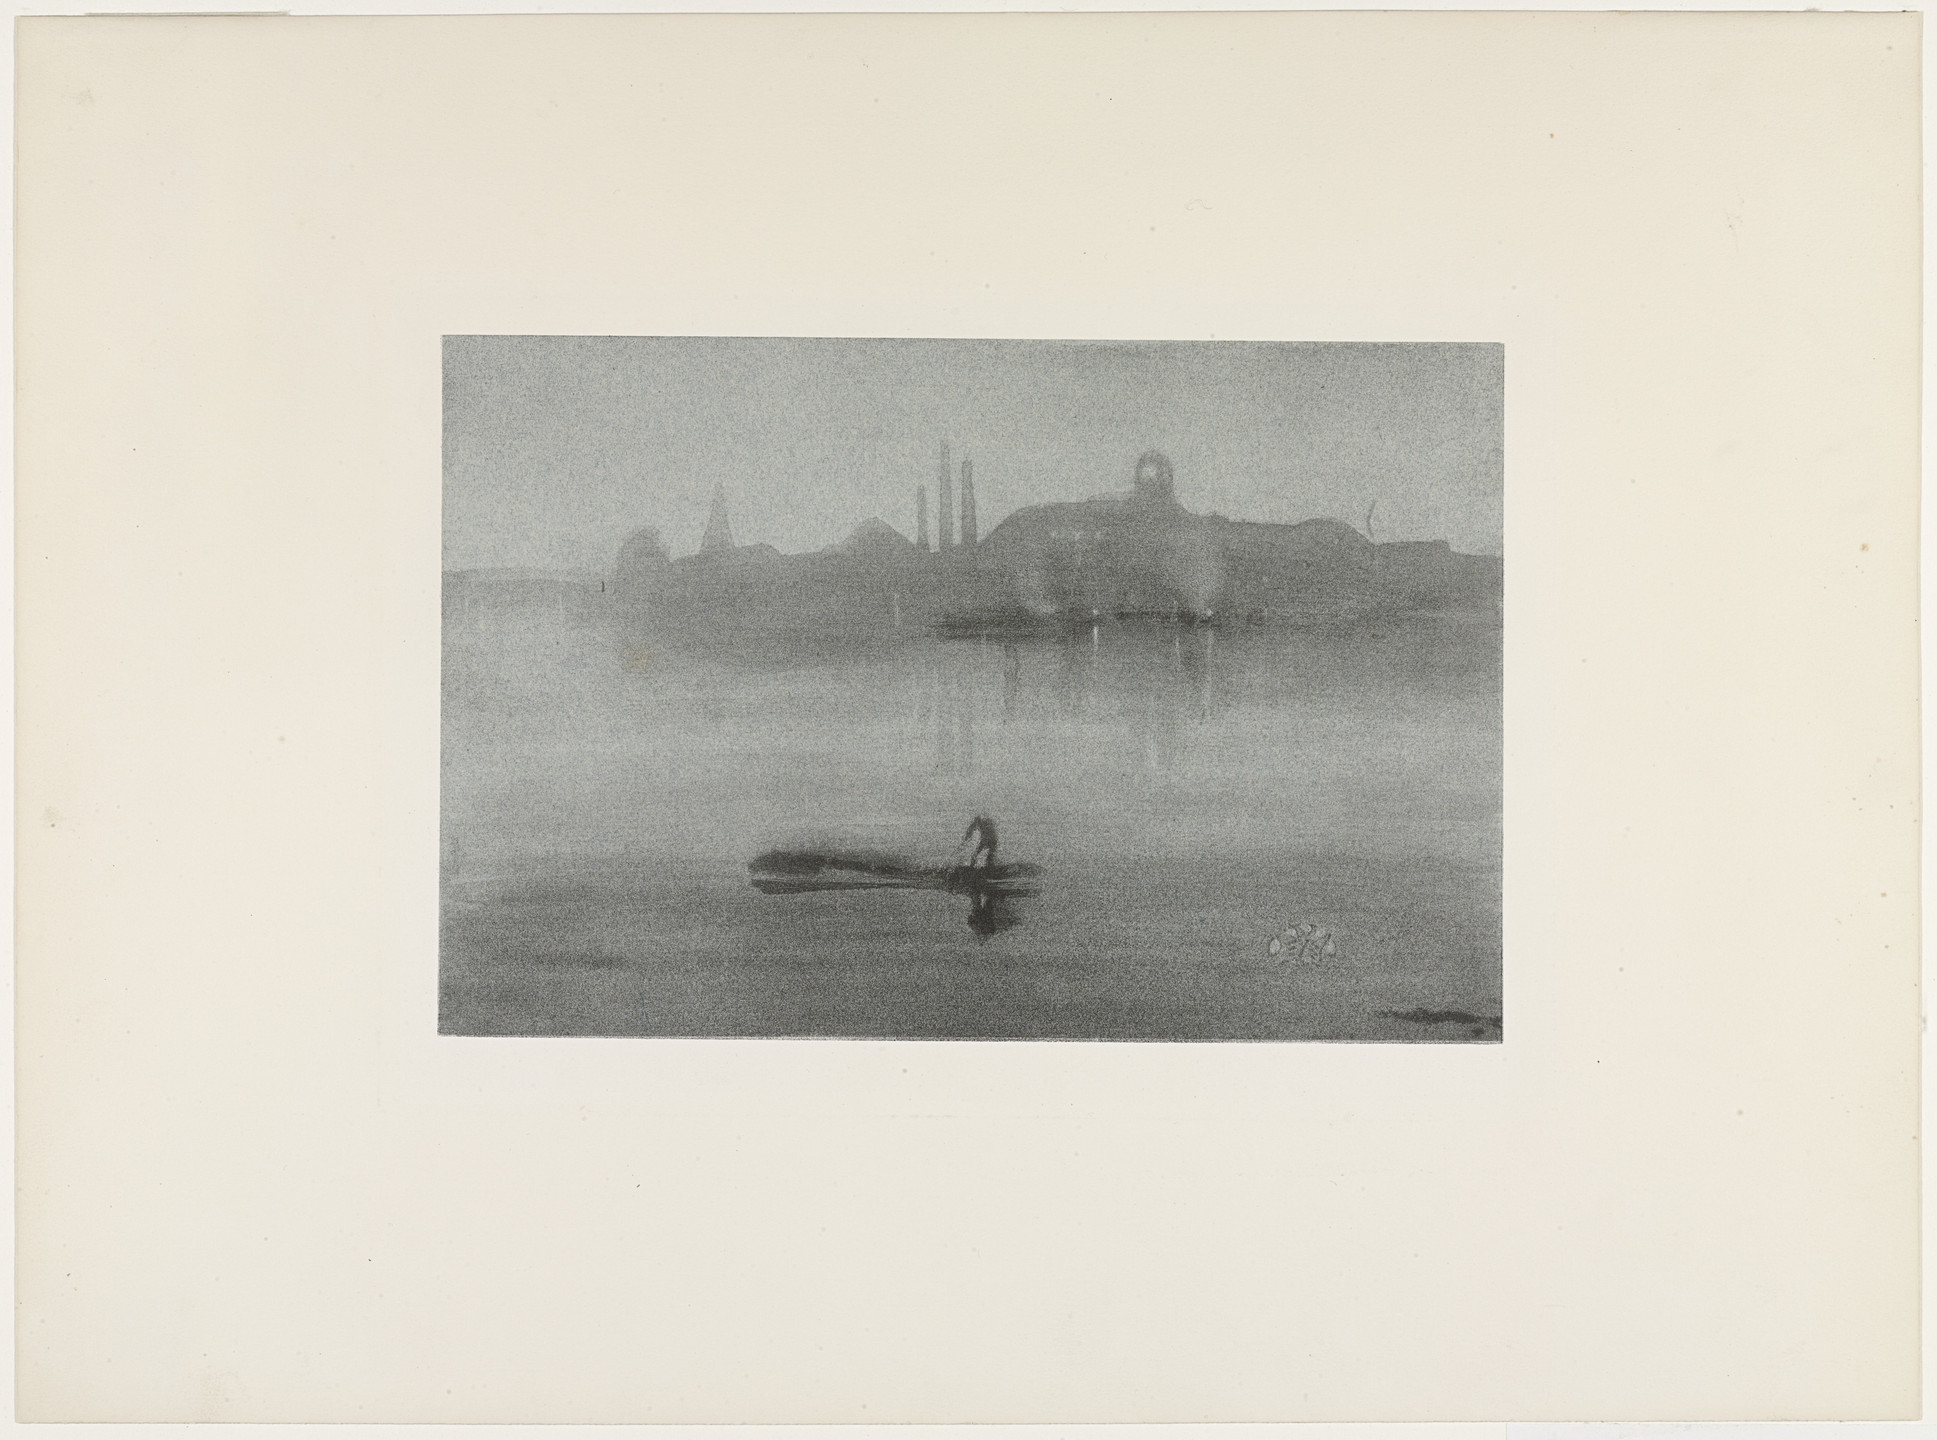 James McNeill Whistler. Nocturne: The River at Battersea. 1878, published 1887